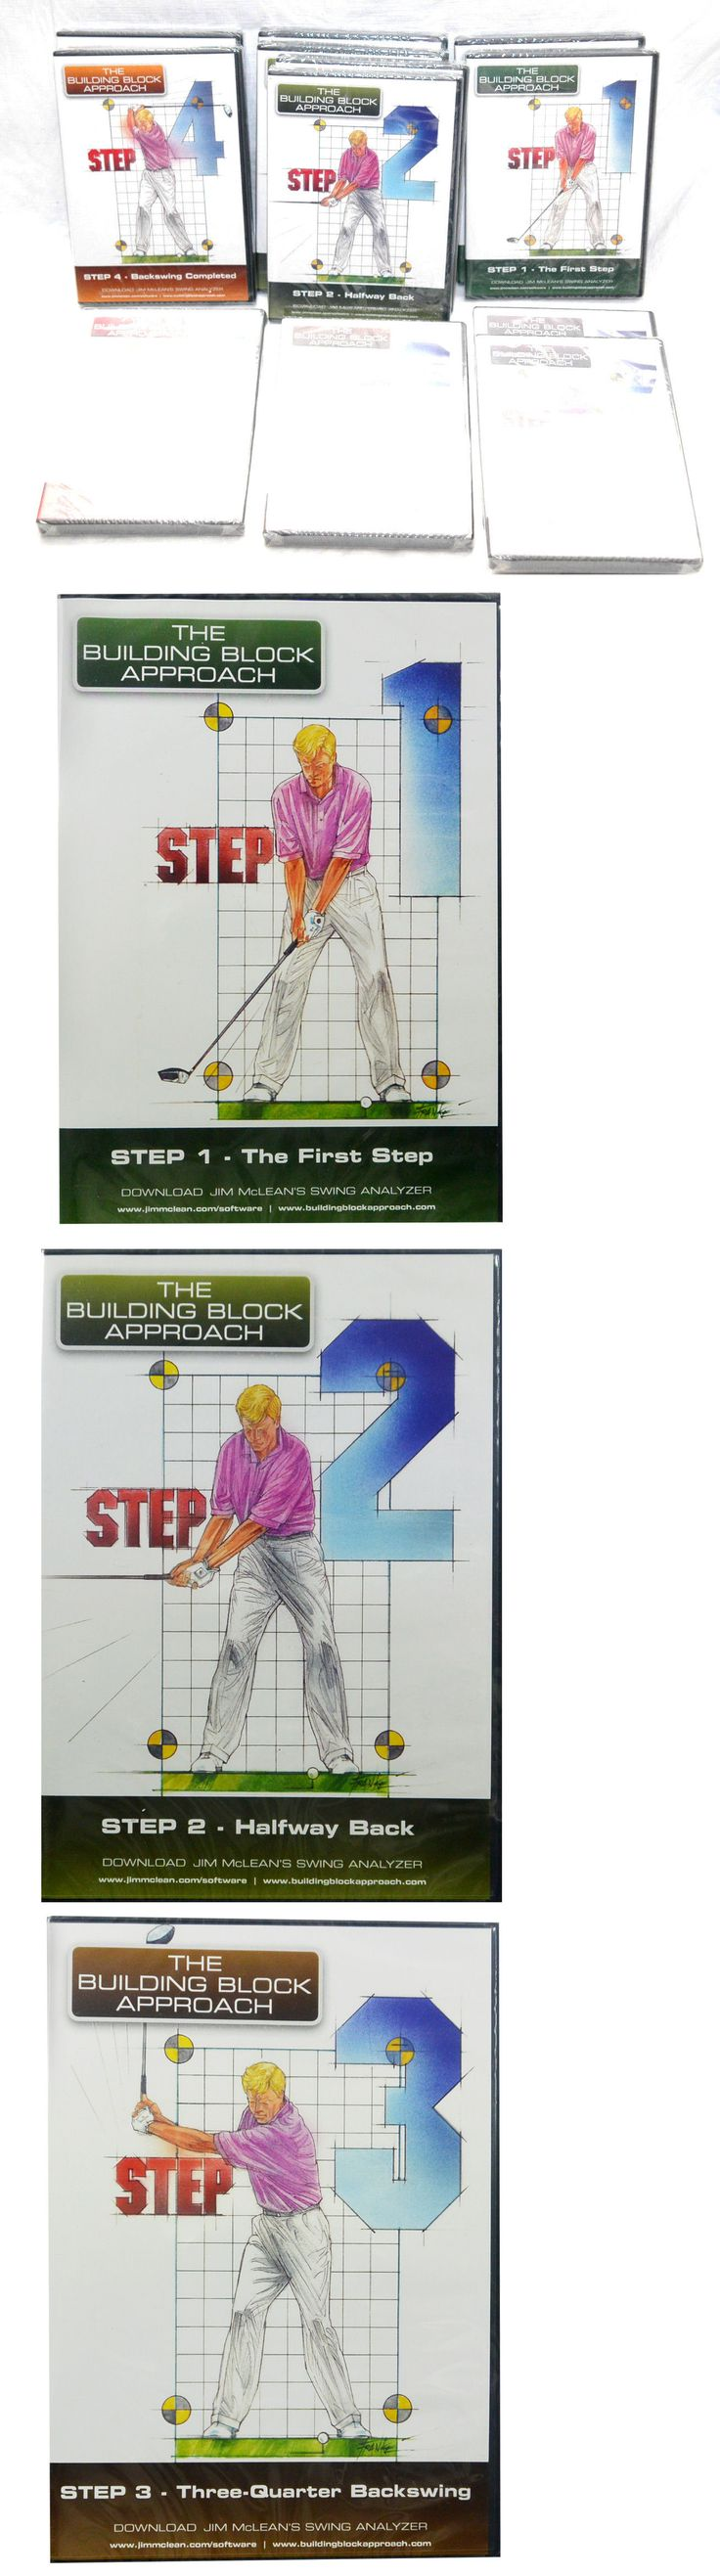 Other Golf Training Aids 14109: New Building Block Approach - Jim Mclean S Revolutionary 12- Dvd S Training Aids -> BUY IT NOW ONLY: $69.99 on eBay!